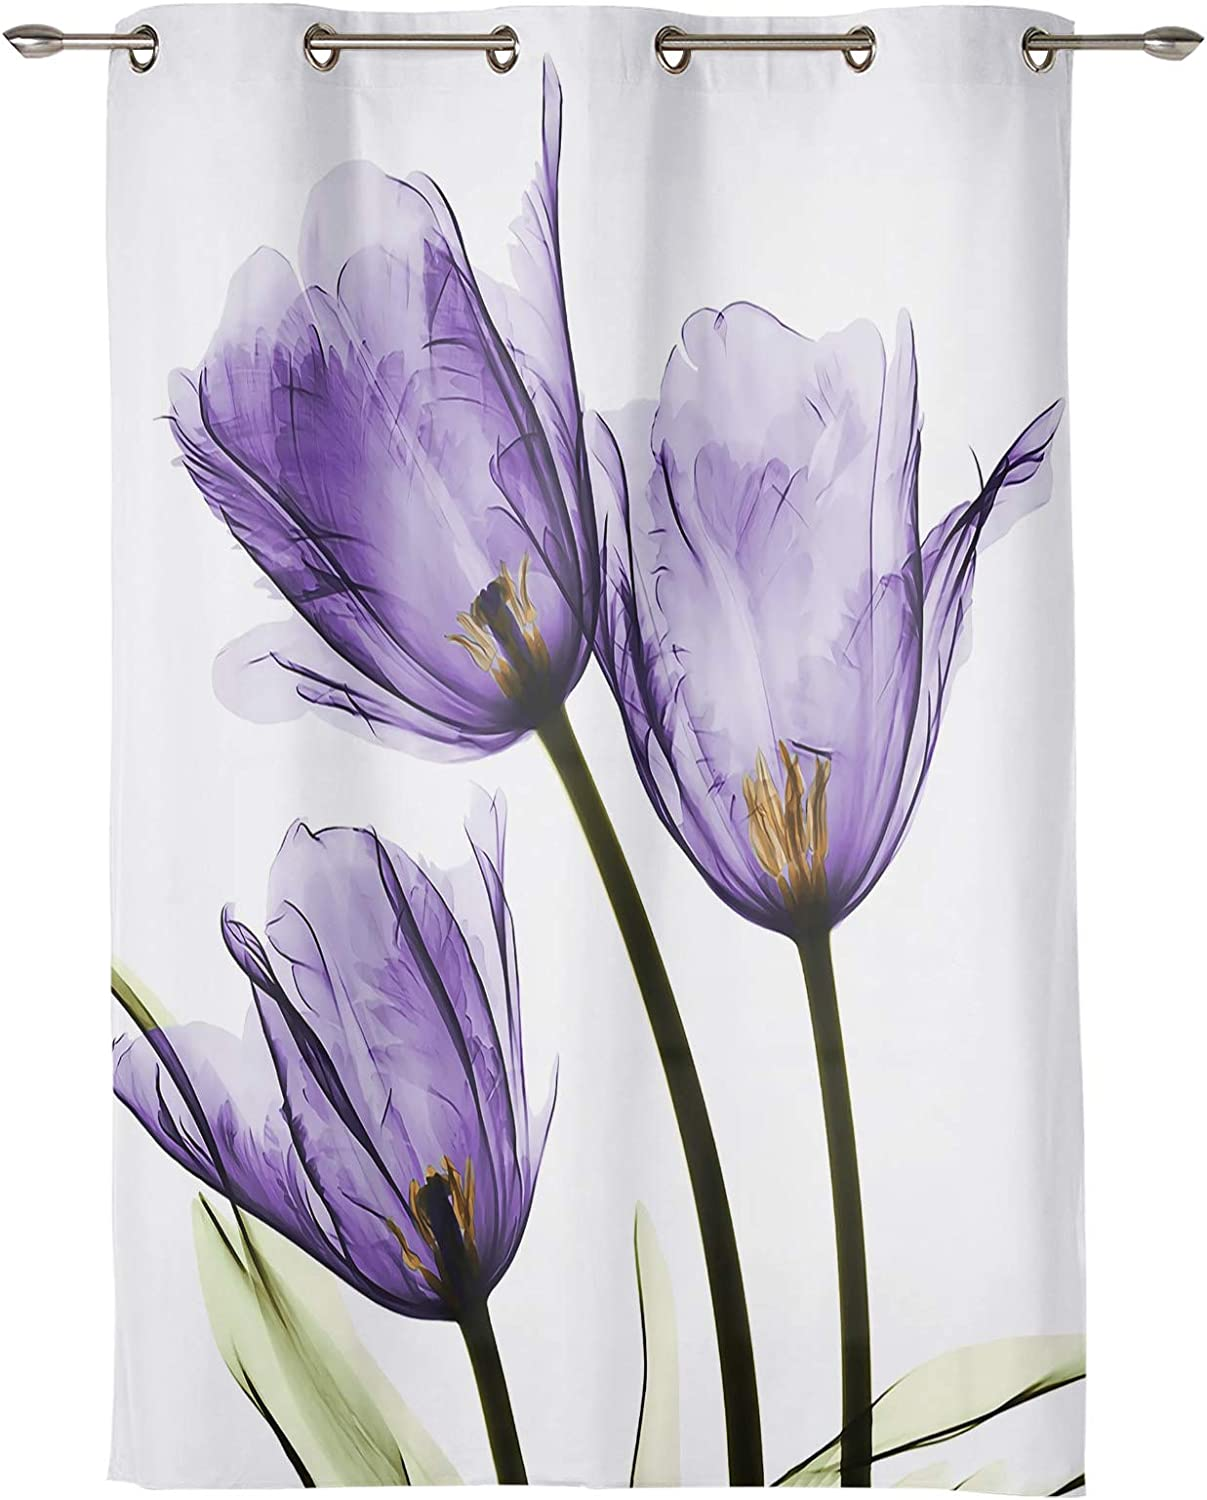 Infinidesign 手数料無料 ご注文で当日配送 Floral Window Curtain Light Protect Privacy Filter